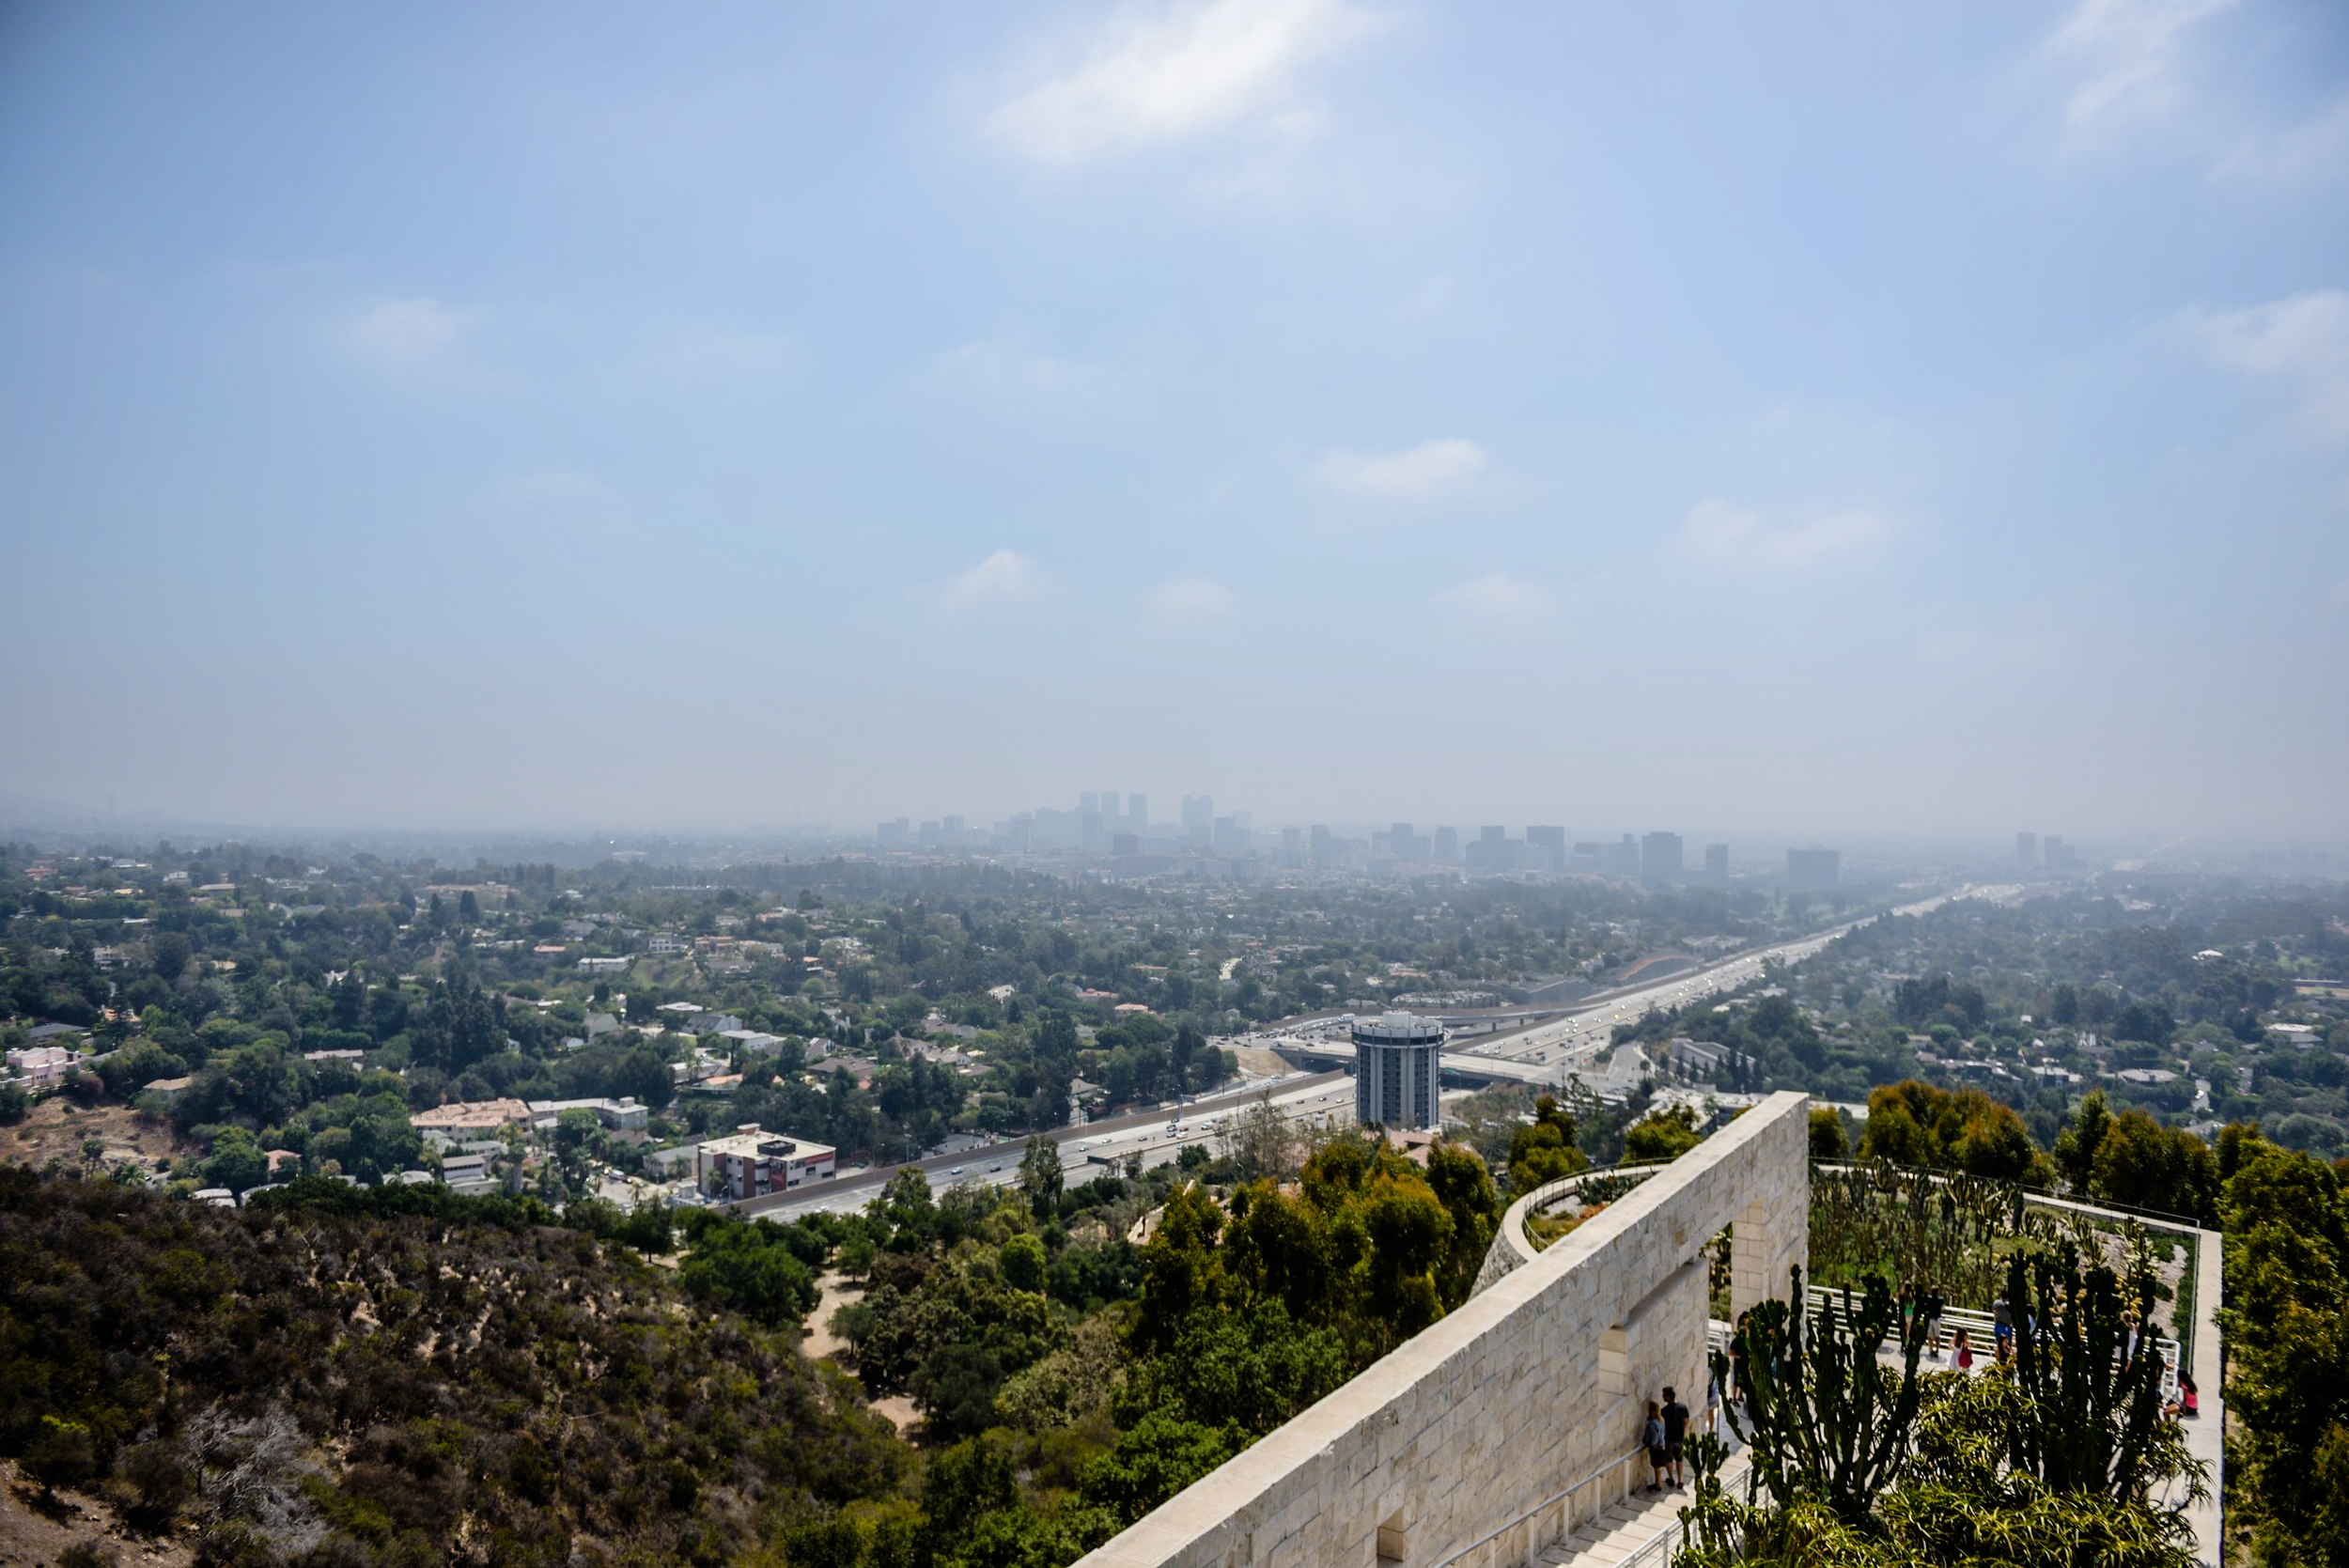 View from The Getty Center of LA